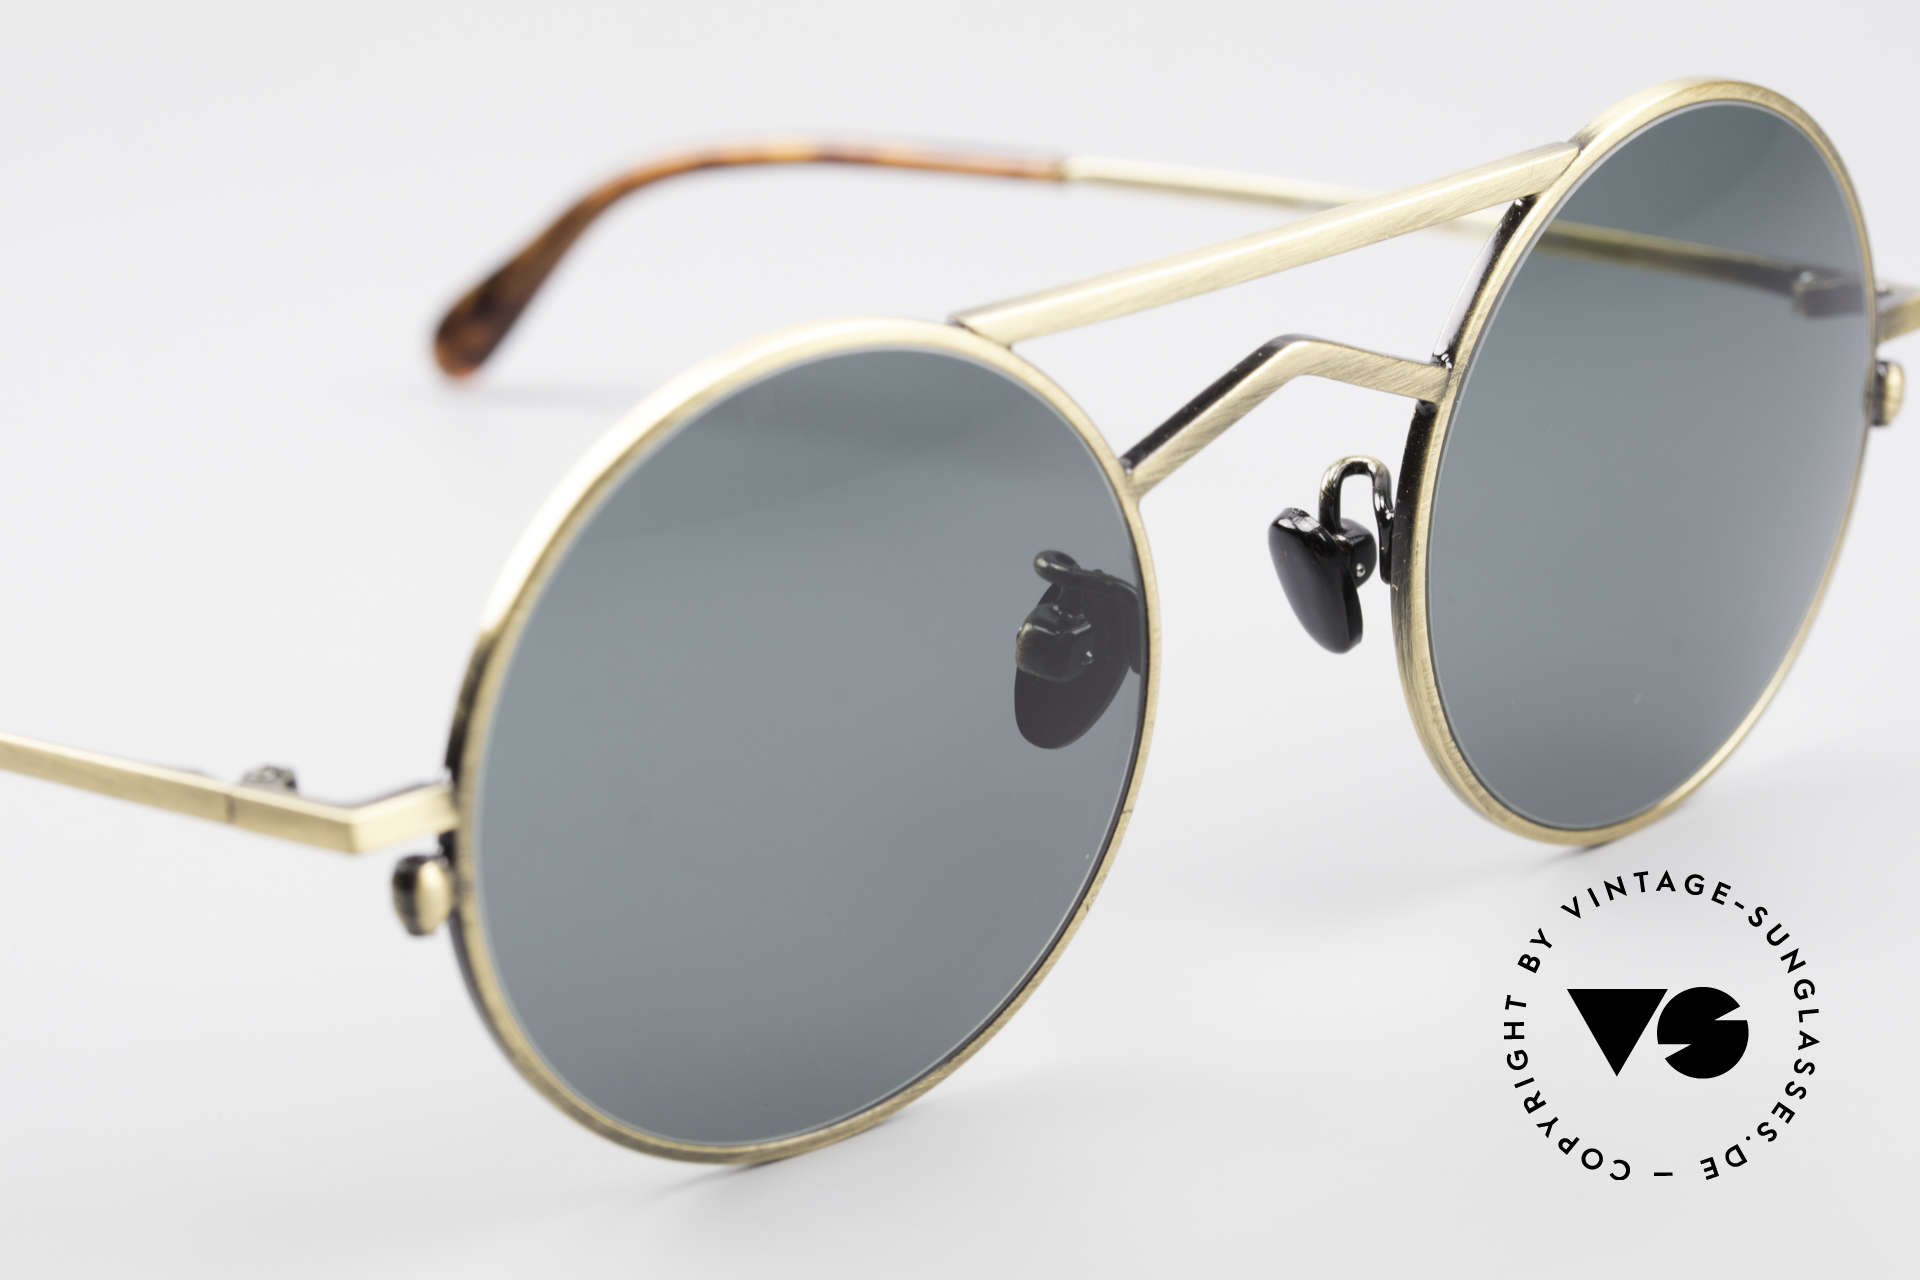 Gianni Versace 540 Small Round Designer Shades, NO retro sunnies, but a rare vintage unicum + case, Made for Men and Women